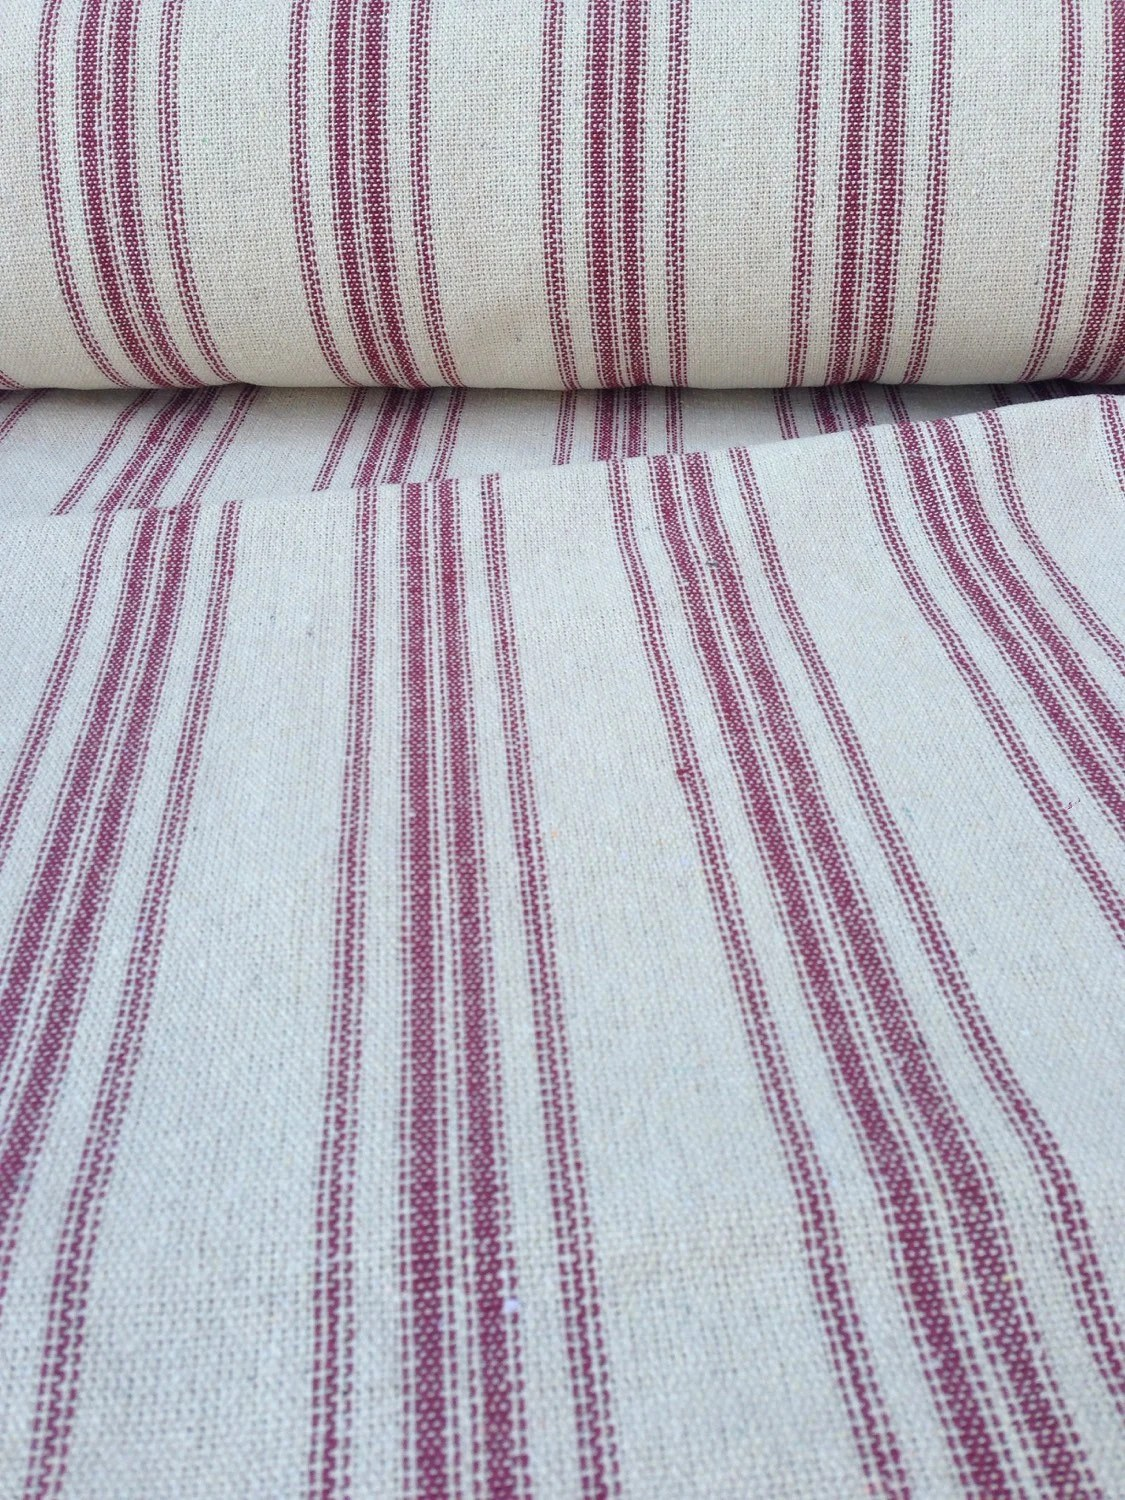 Flour Sack Fabric By The Yard Grain Sack Fabric Sold By The Yard Red Stripes Vintage